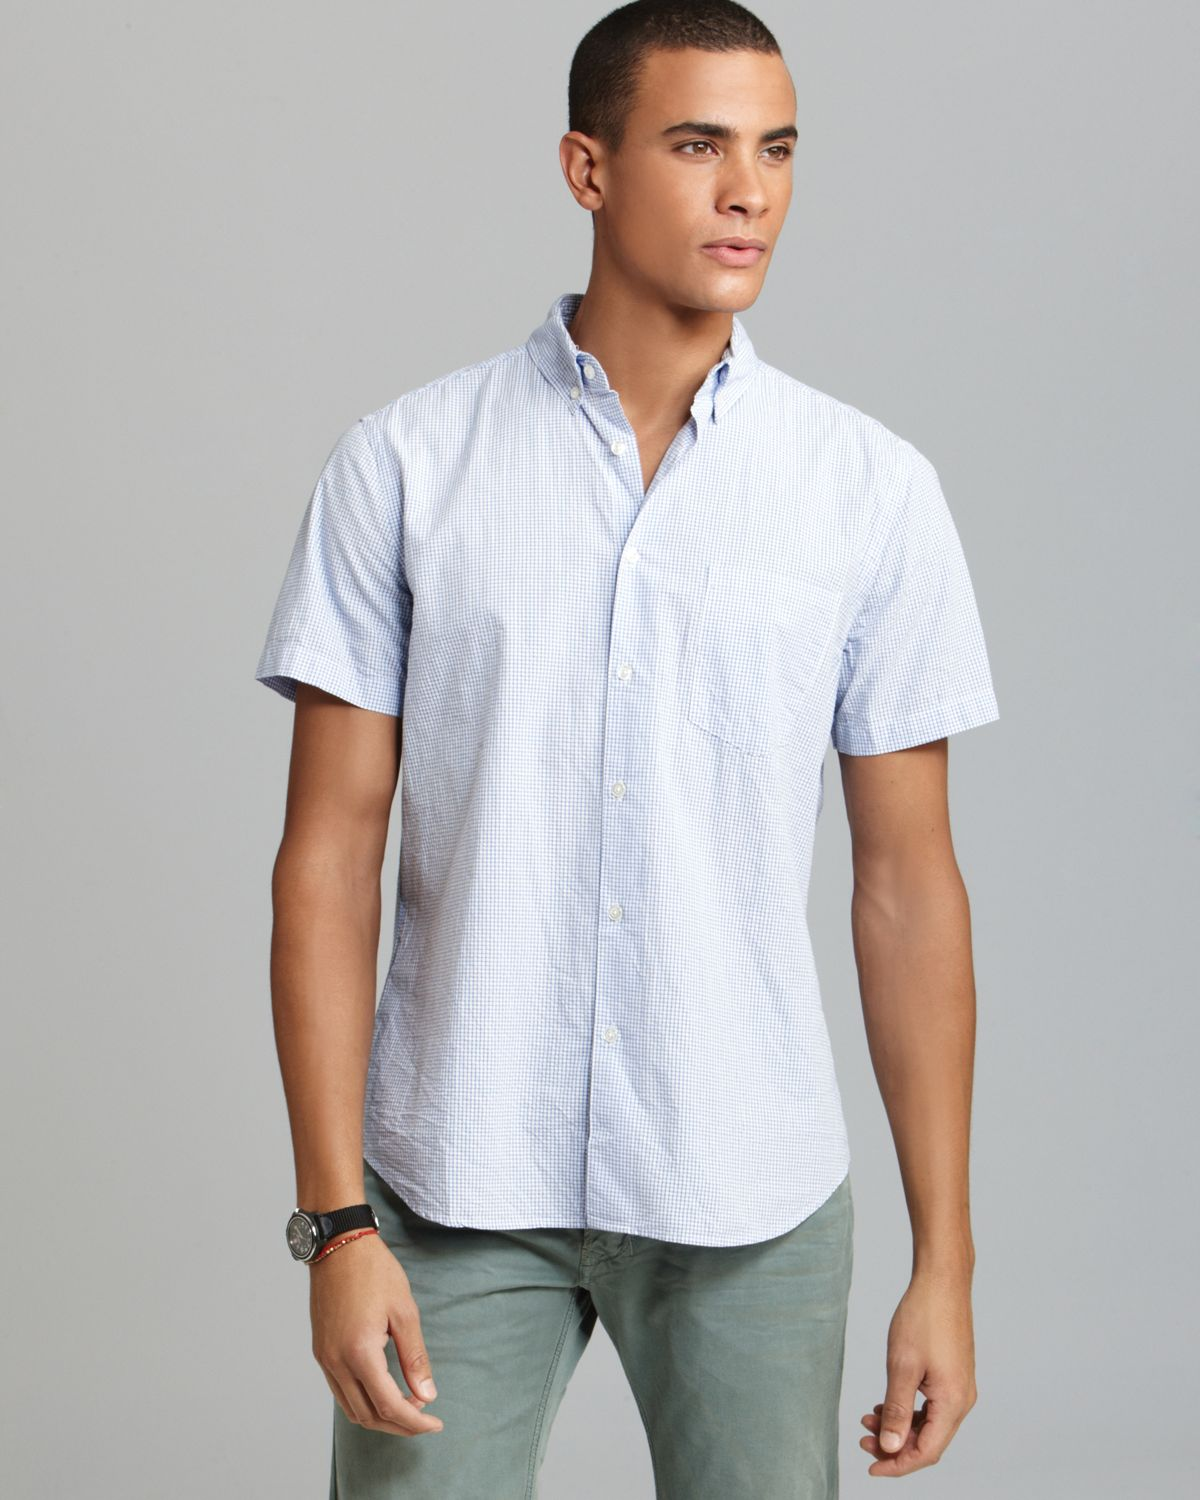 lyst steven alan single needle seersucker short sleeve button down shirt classic fit in blue. Black Bedroom Furniture Sets. Home Design Ideas